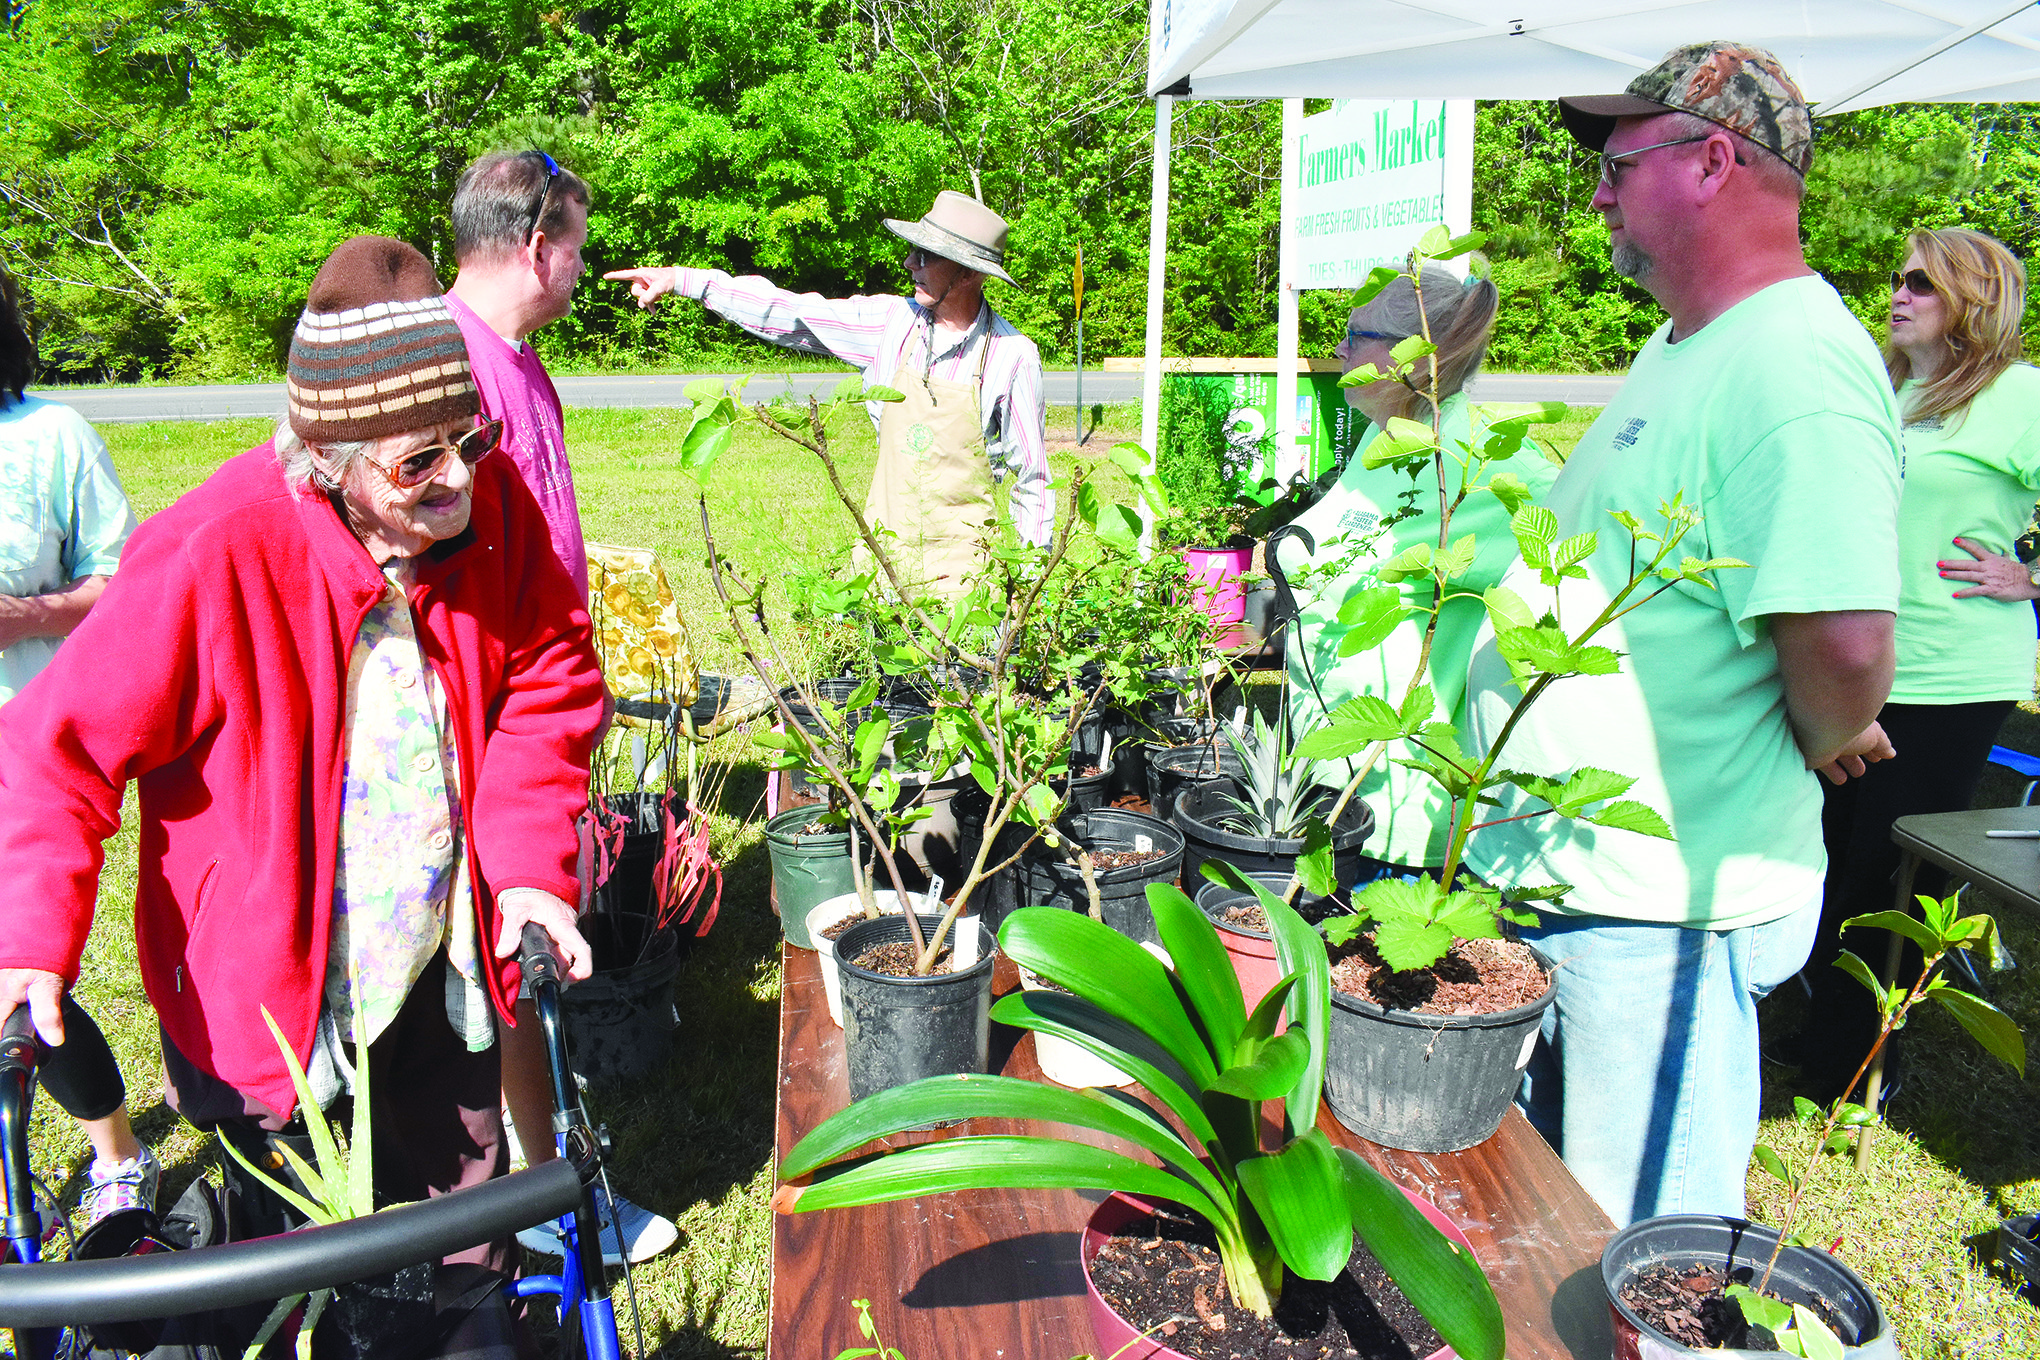 Walker County Master Gardeners held their annual plant sale Saturday morning at the Walker County Farmer's Market on North Airport Road in Jasper. Vegetable and fruit plants, perennials, houseplants, succulents, shrubs and more were available for sale, attracting a number of potential buyers.